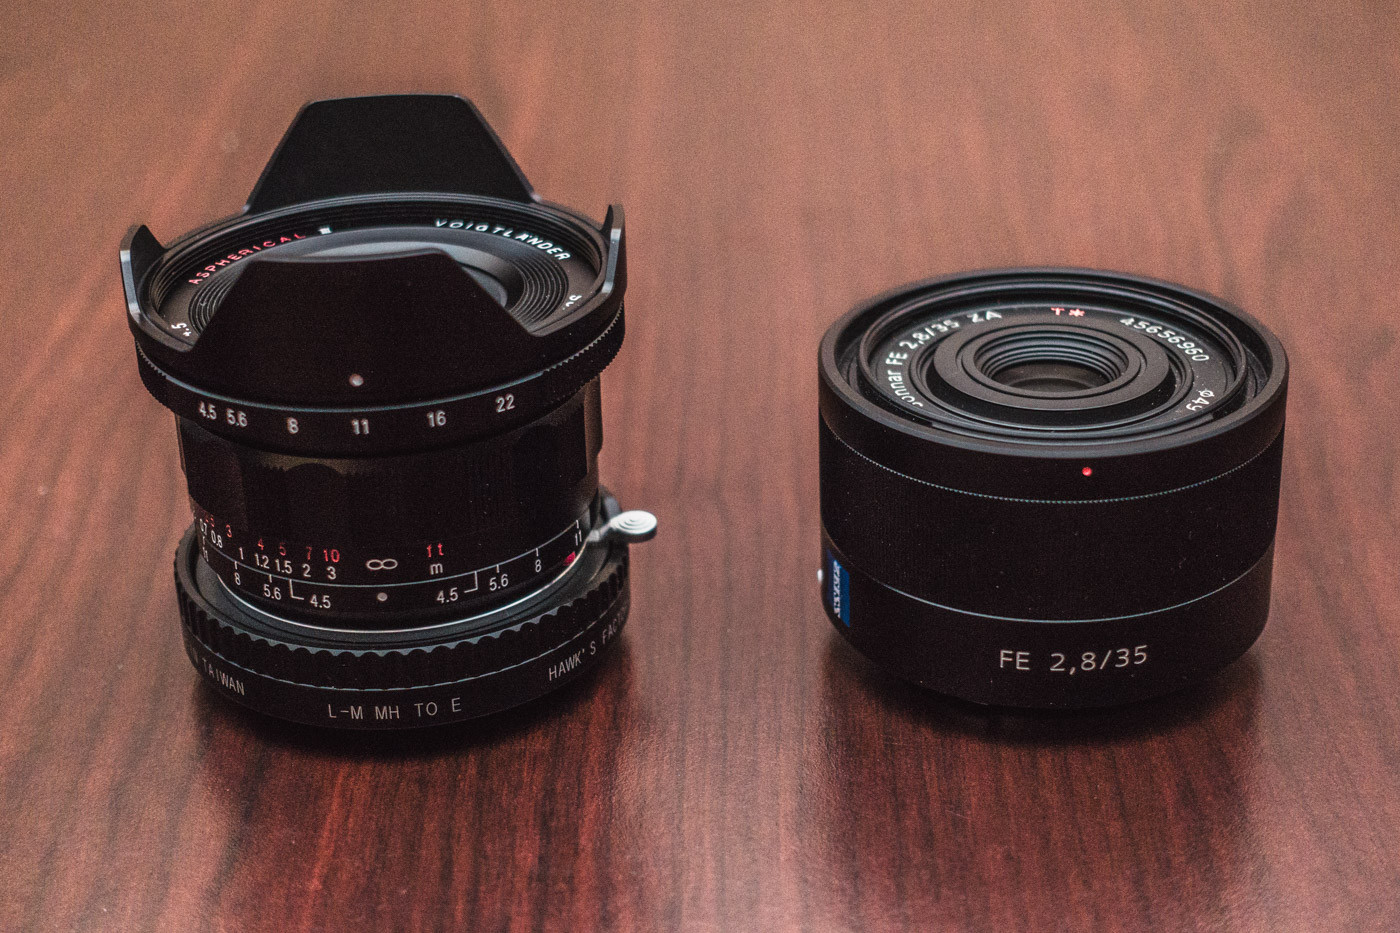 The Voigtlander 15mm f/4.5 Heliar III is not much larger than the Sony Zeiss FE 35mm f/2.8 Sonnar T*, even with a Leica M to Sony E mount adapter attached.